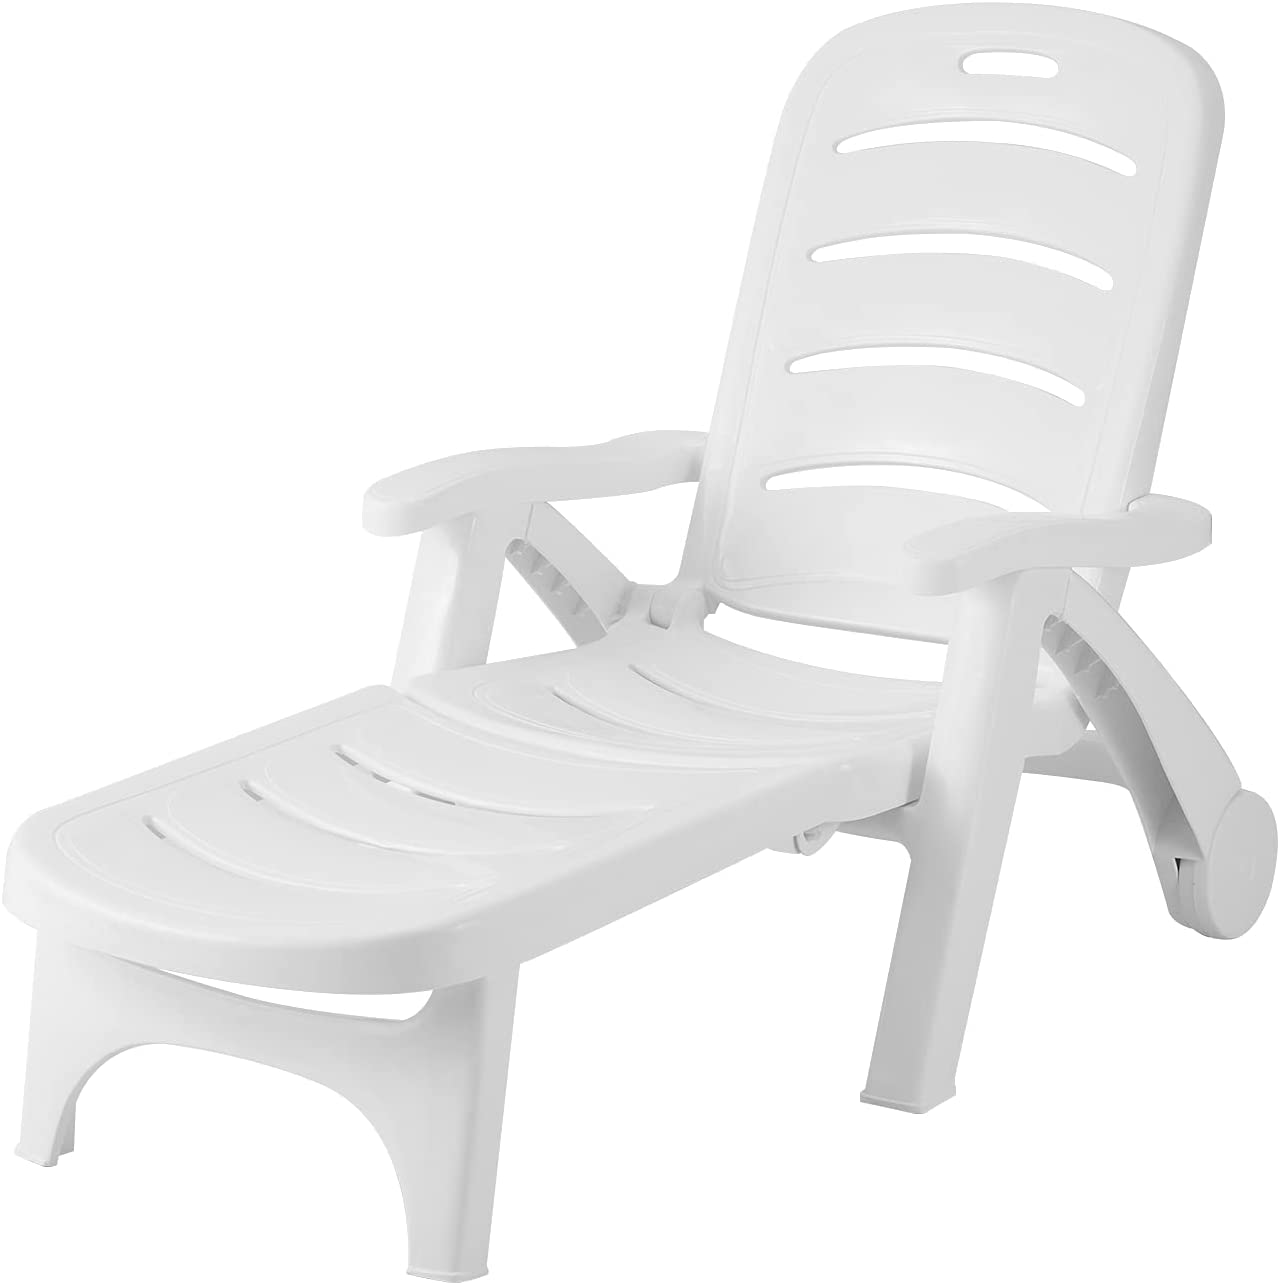 EROMMY Lounge Chair Chaise Selling with Pos 5 Backrest Adjustable Low price